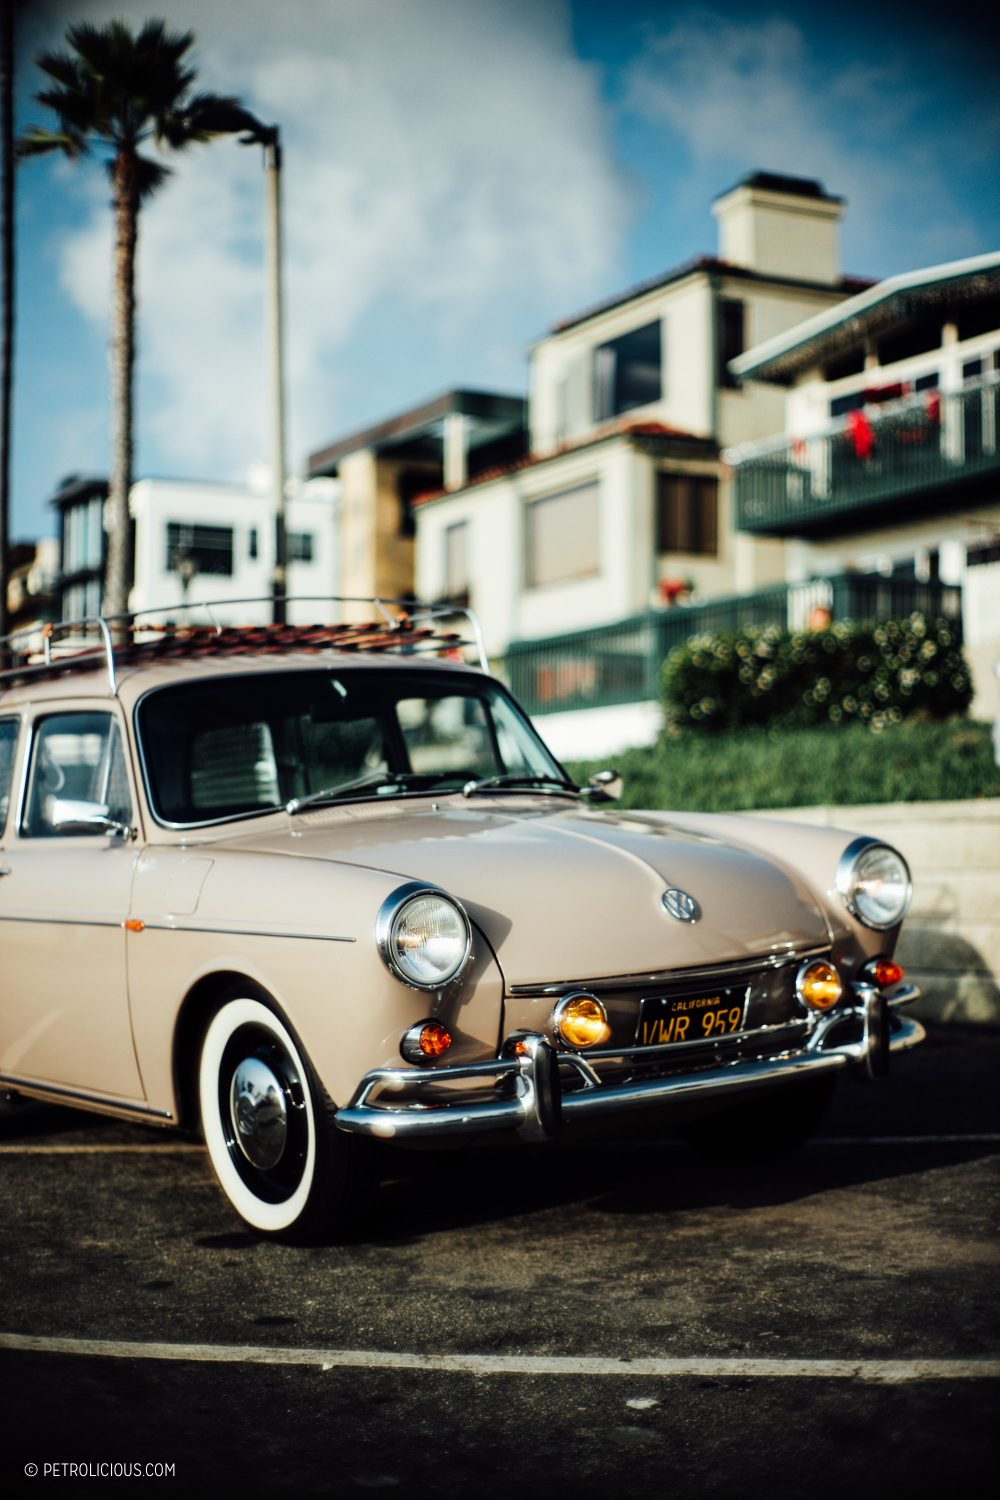 This vw type 3 squareback is the ultimate california beachcomber tg whats the general reaction when you park it on the street near the beach publicscrutiny Image collections